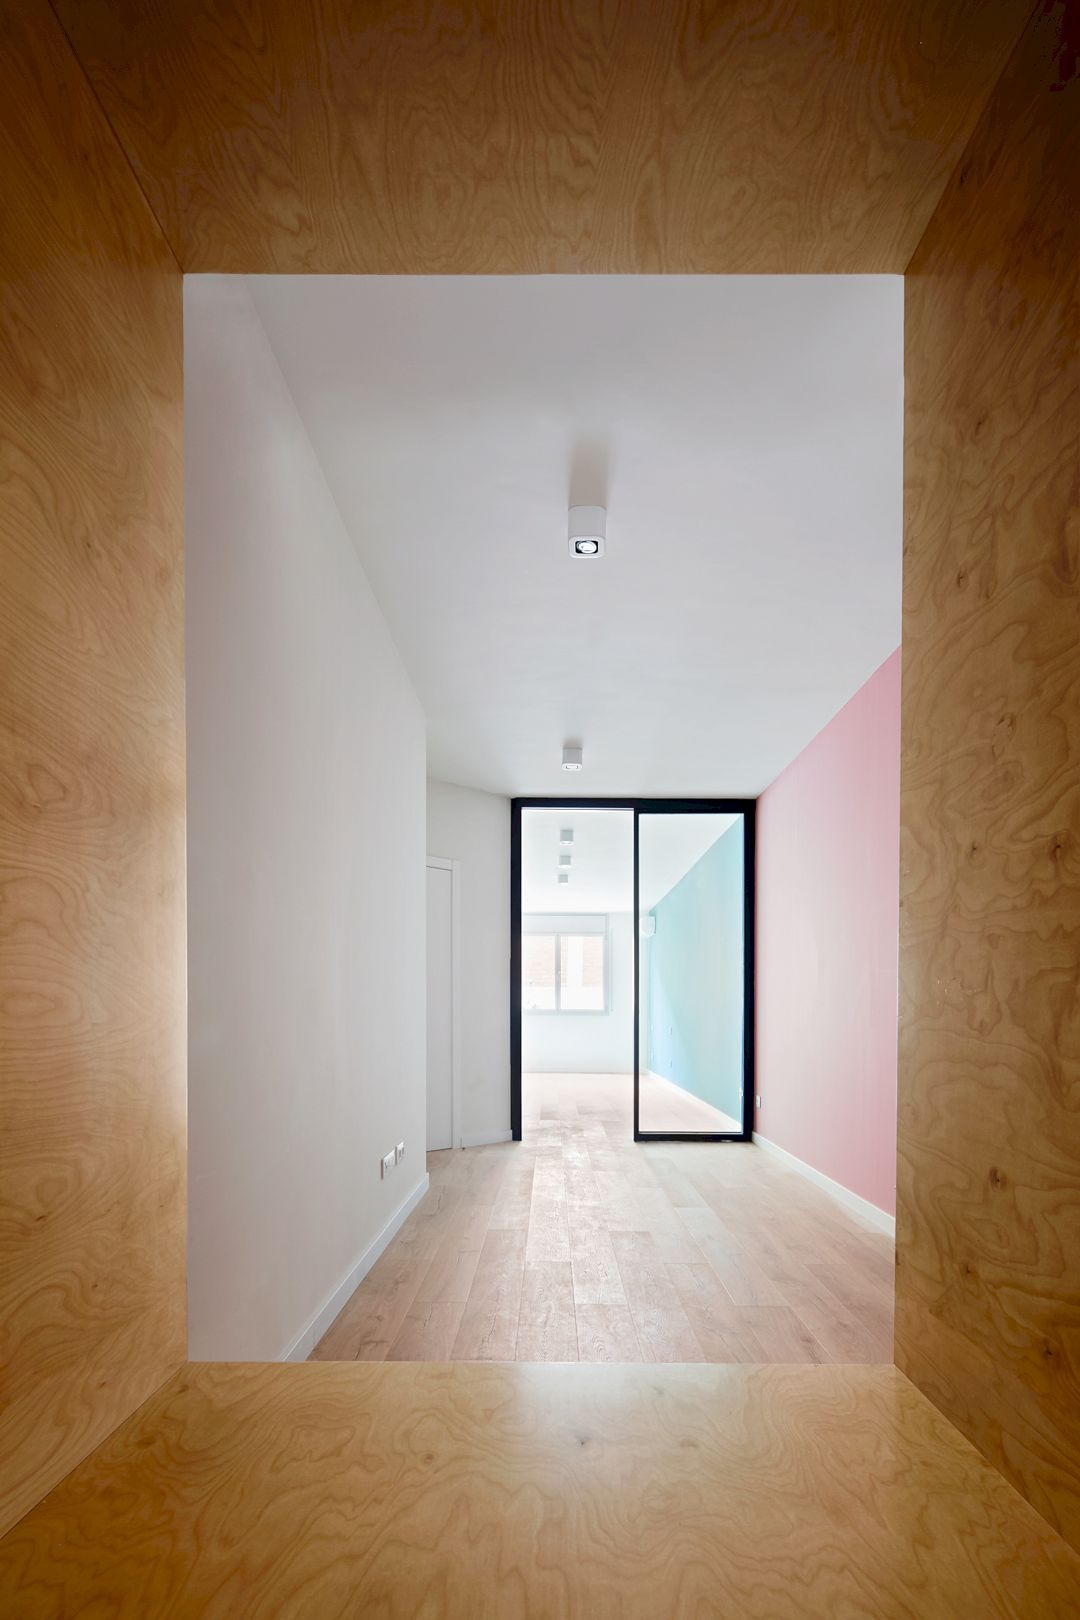 Design office space dwelling Dwelling Futuristic Corsega Apartment An Office Space Transformation Into Dwelling With Contemporary Interior architecture House Beautiful Corsega Apartment An Office Space Transformation Into Dwelling